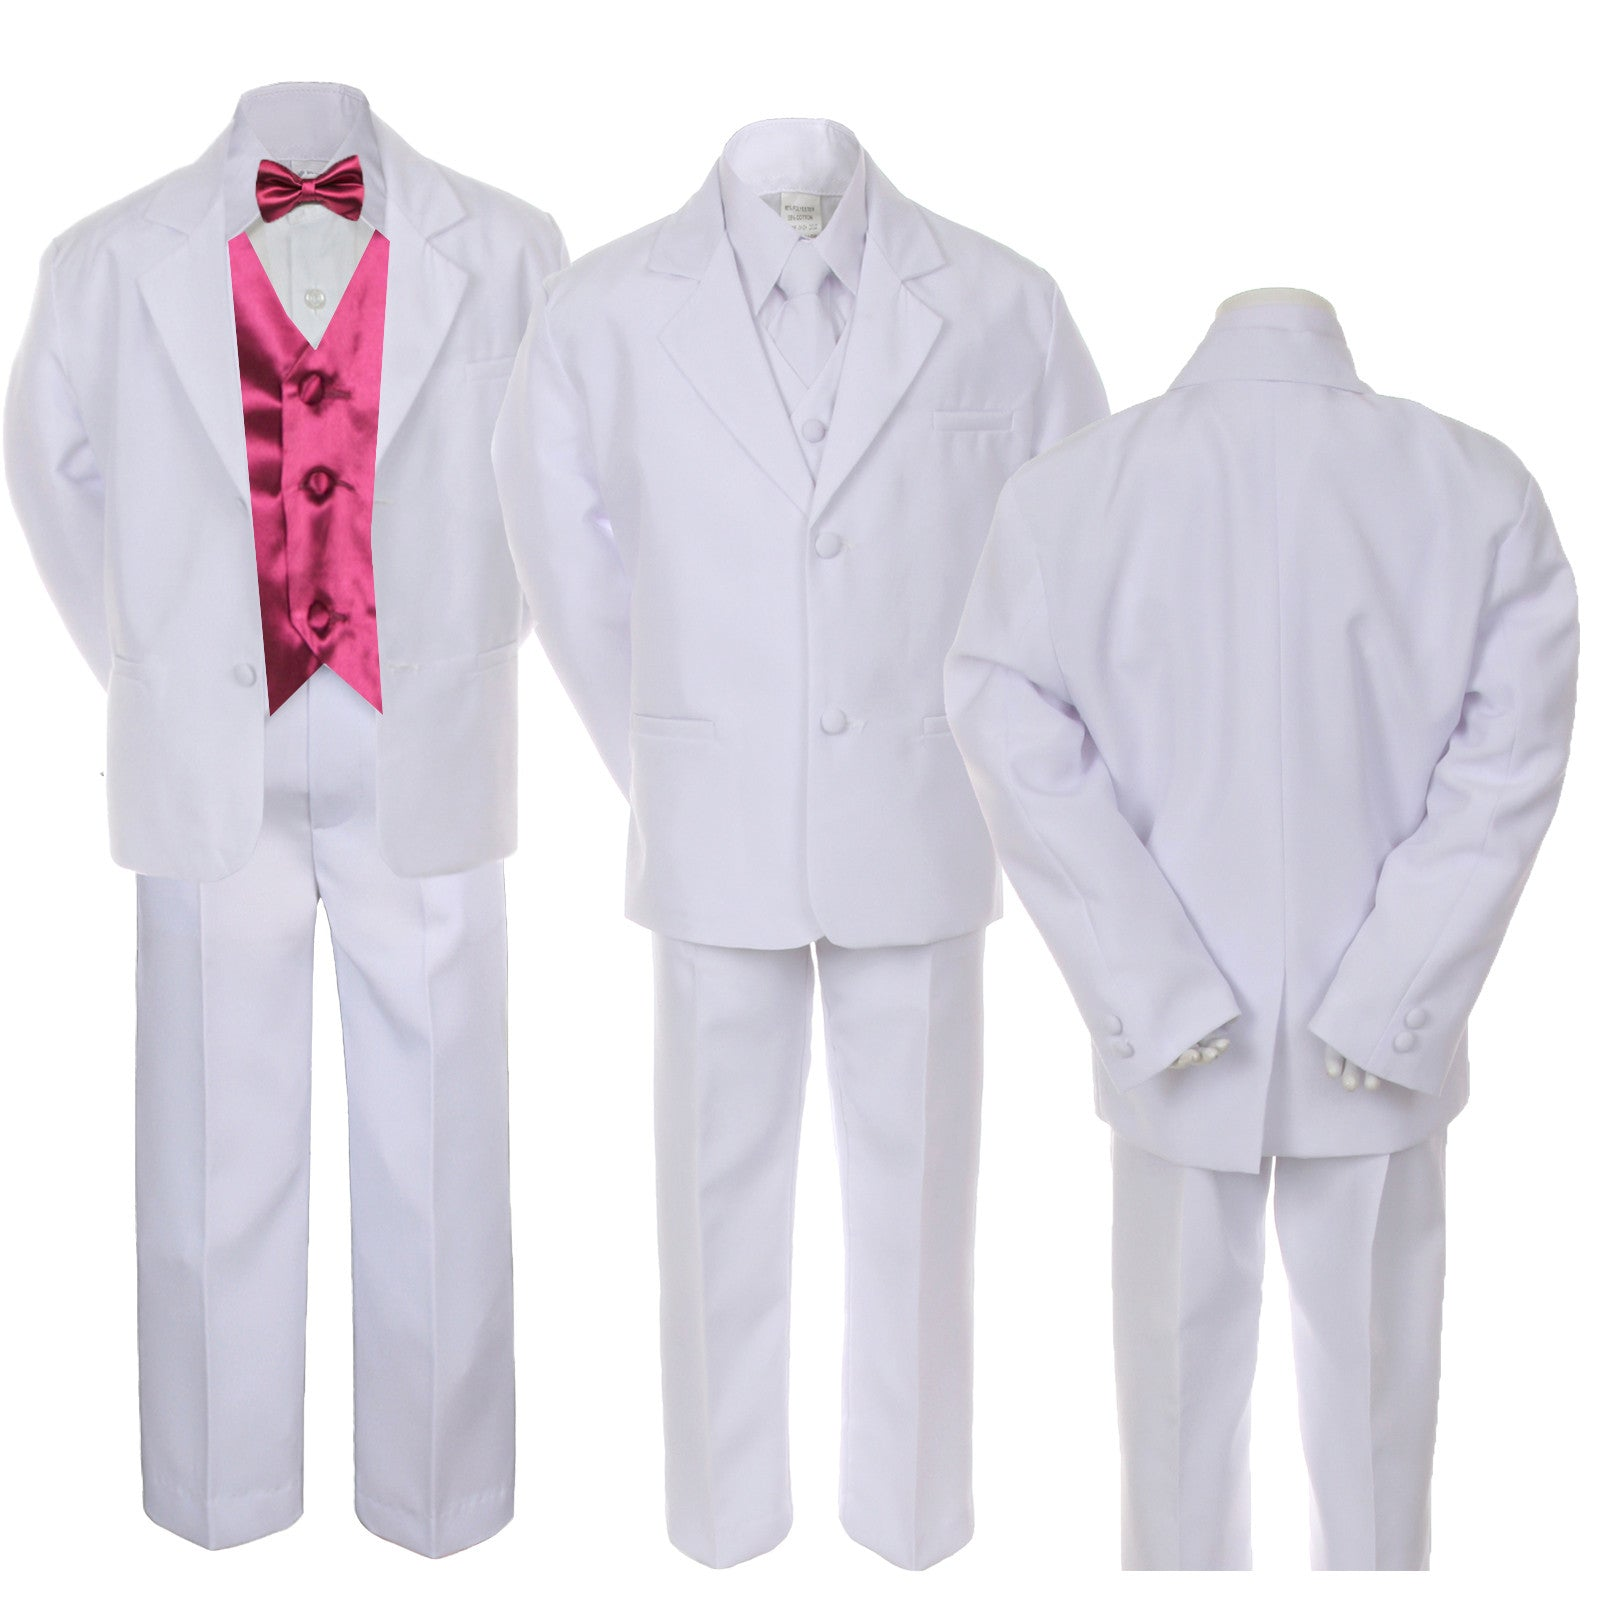 7pc Boy Kid Teen White Formal Wedding Party Suit Tuxedo BURGUNDY ...